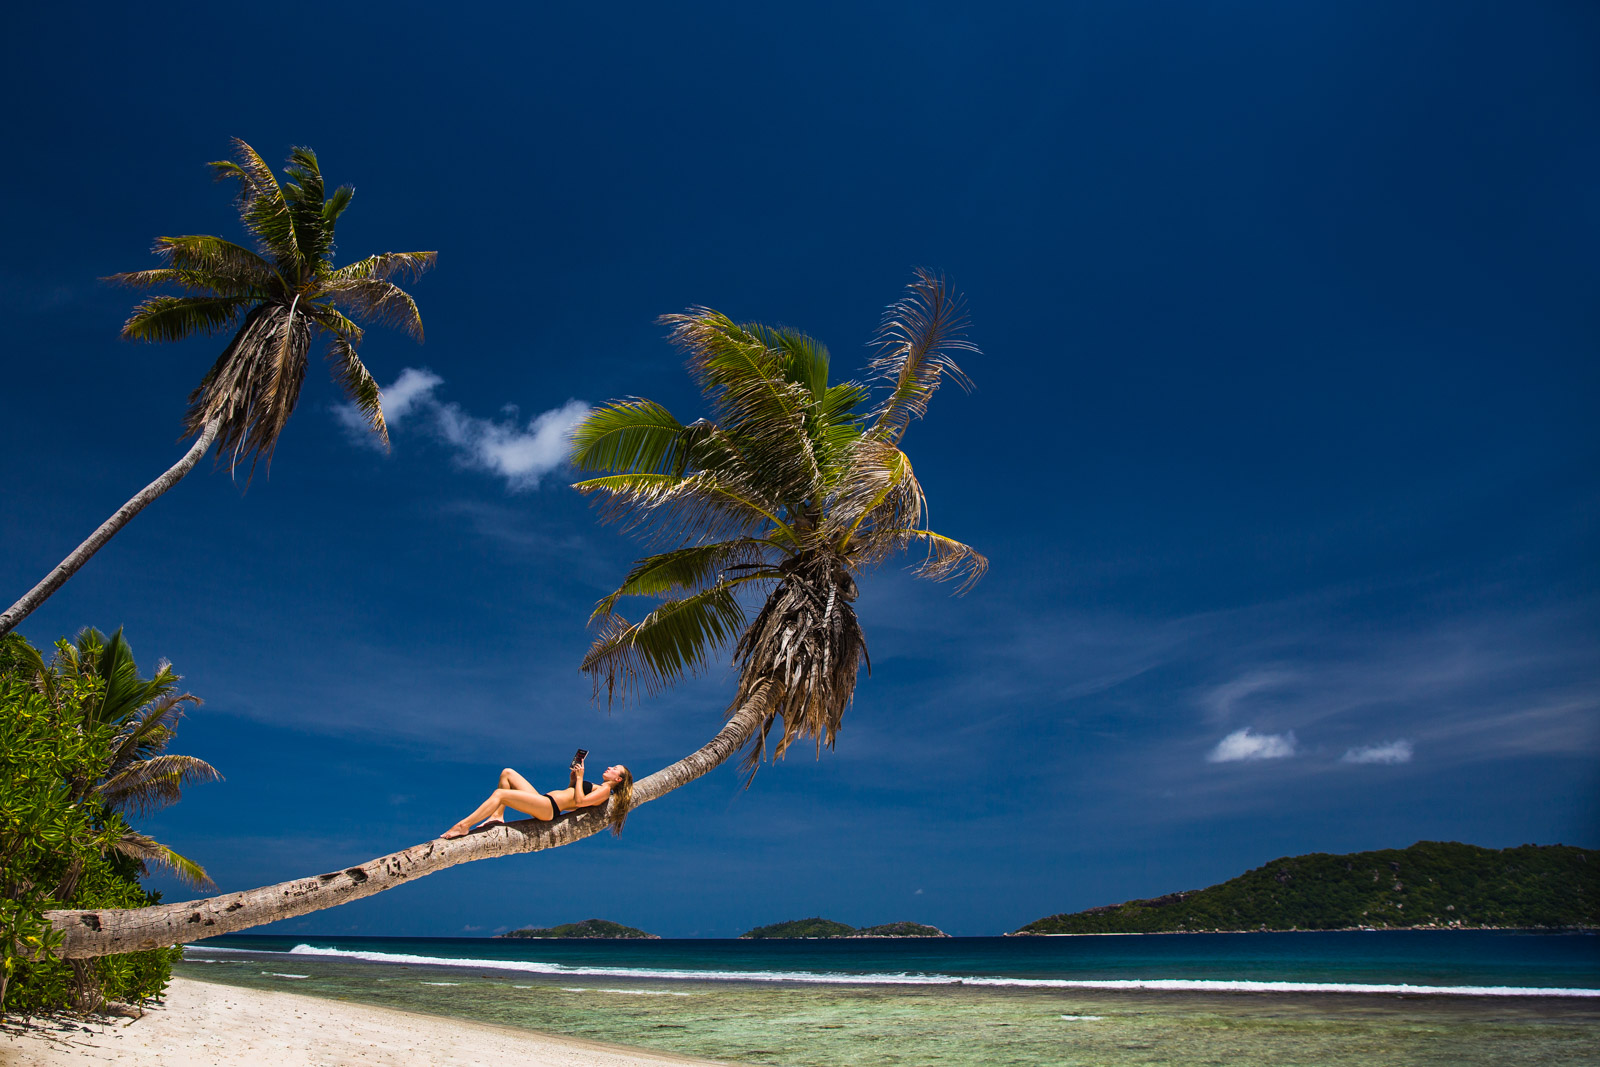 beach, chillax, destination photographer, fotograf, la digue, palm tree, paradise, photographer, reading, relax, resefotograf, seychellerna, seychelles, travel, travel photographer, vacation